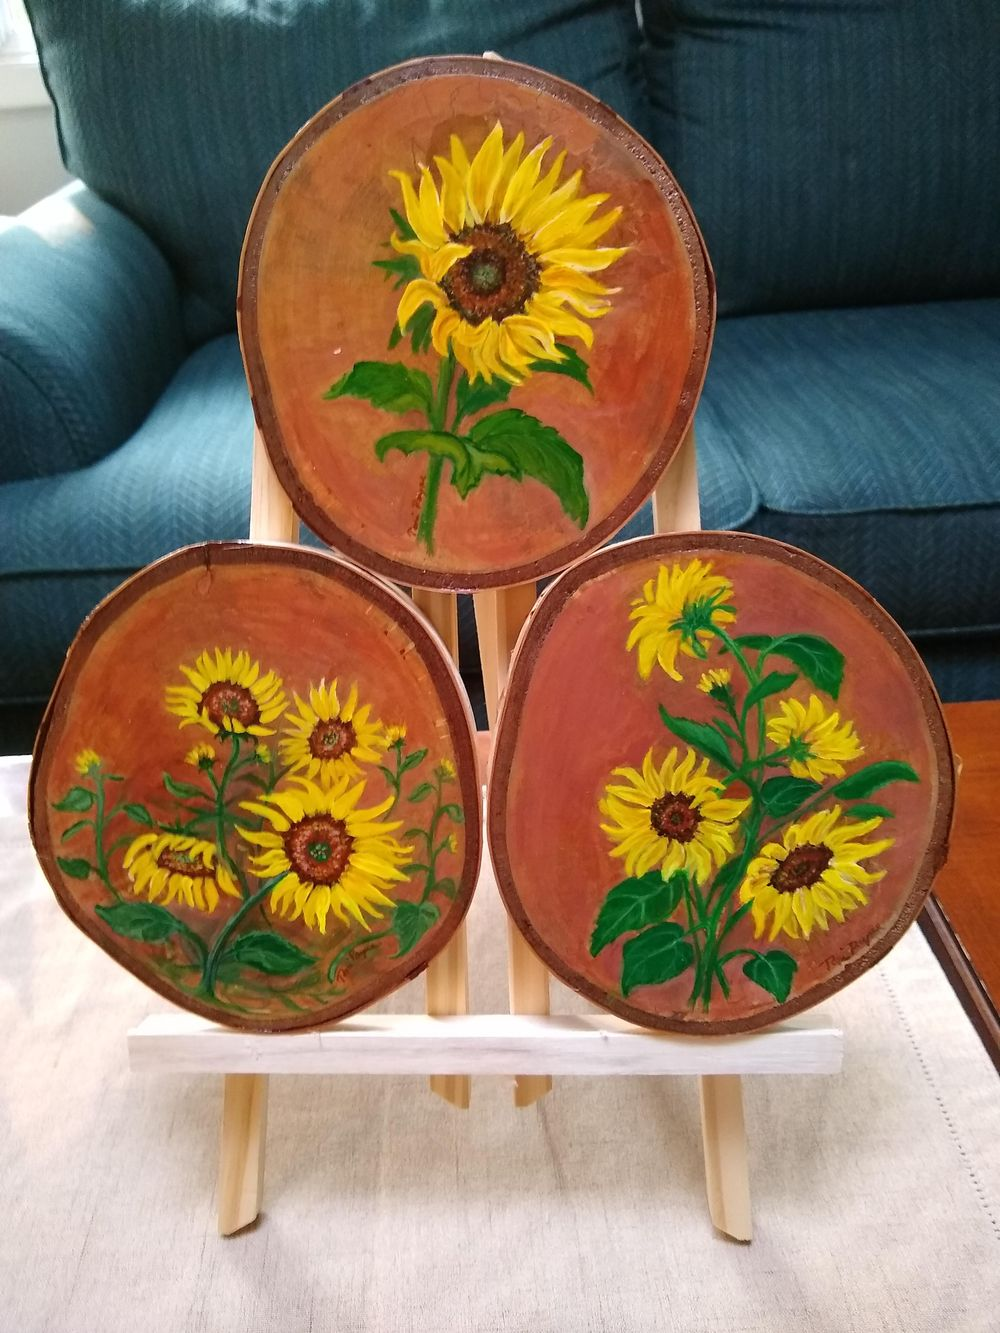 Sunflower Paintings - image 4 - student project